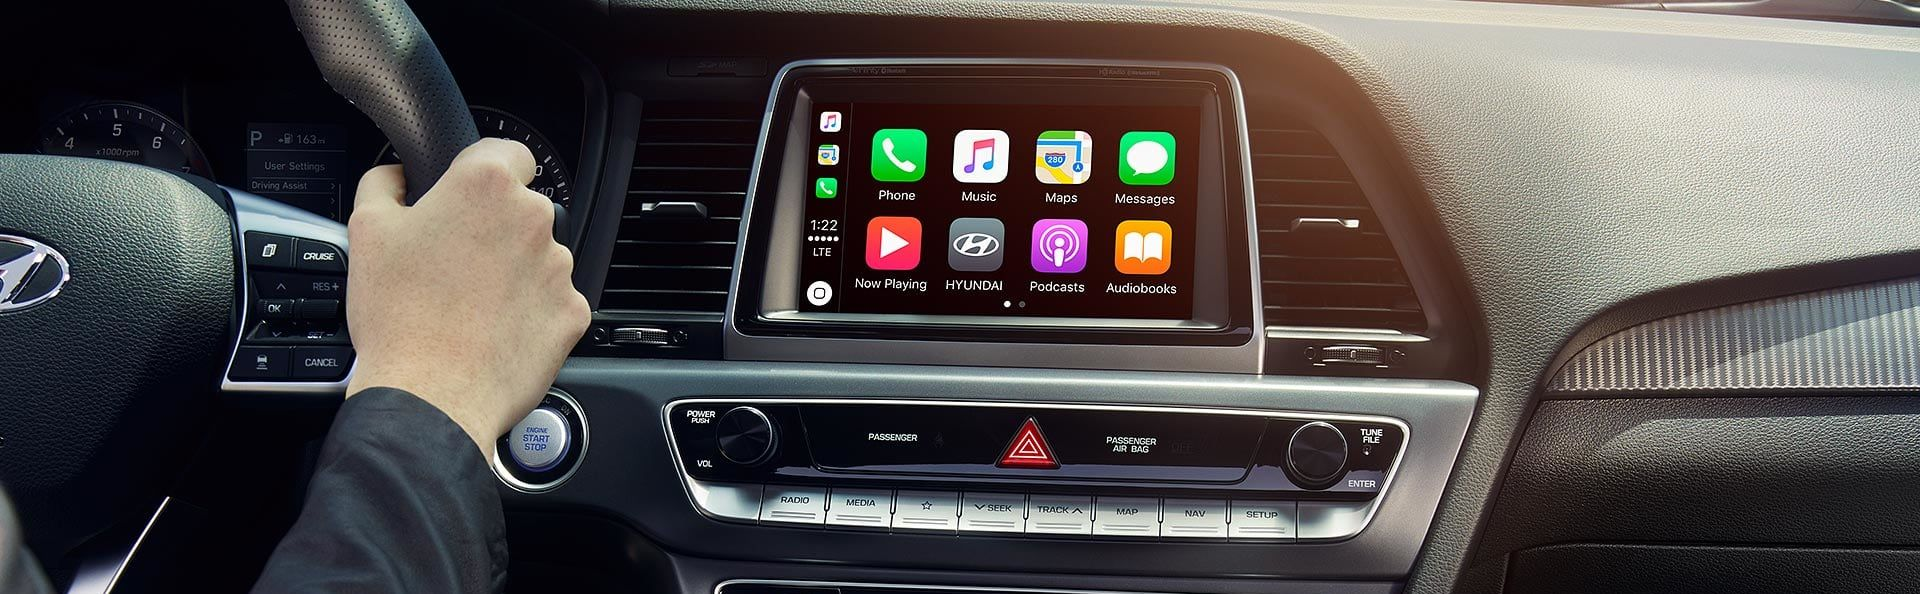 Apple CarPlay in the Hyundai Sonata